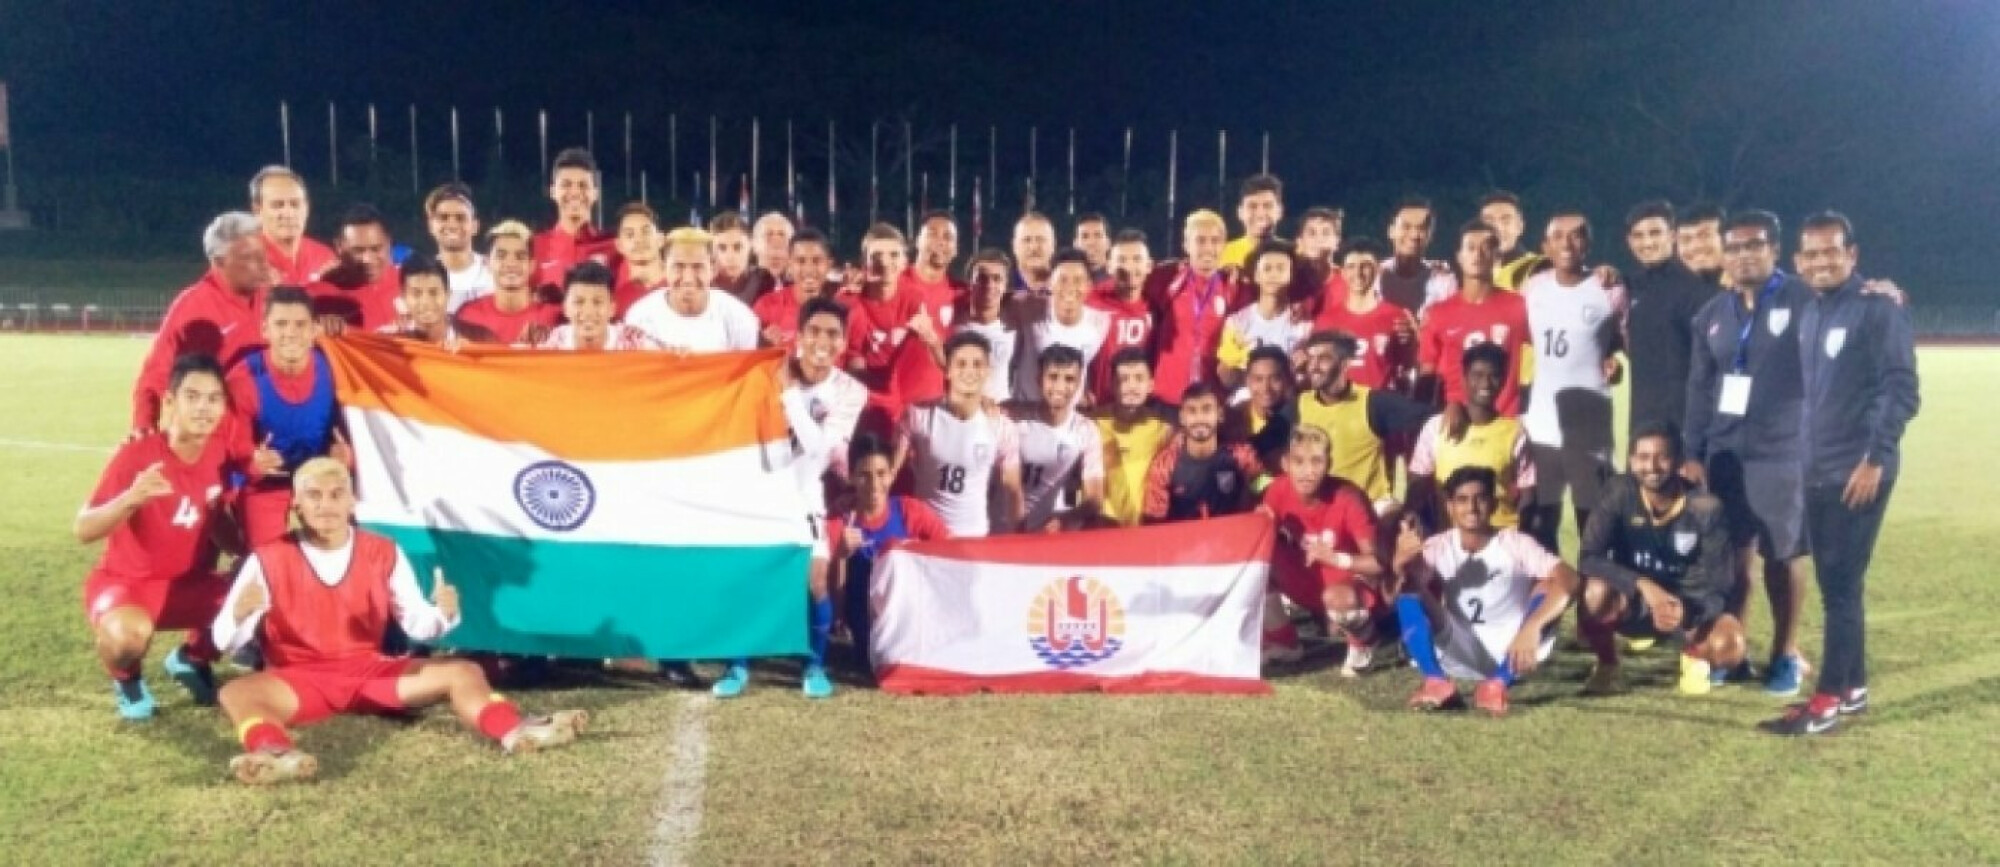 OFC Youth Tournament 2019: India beat Tahiti to emerge champions